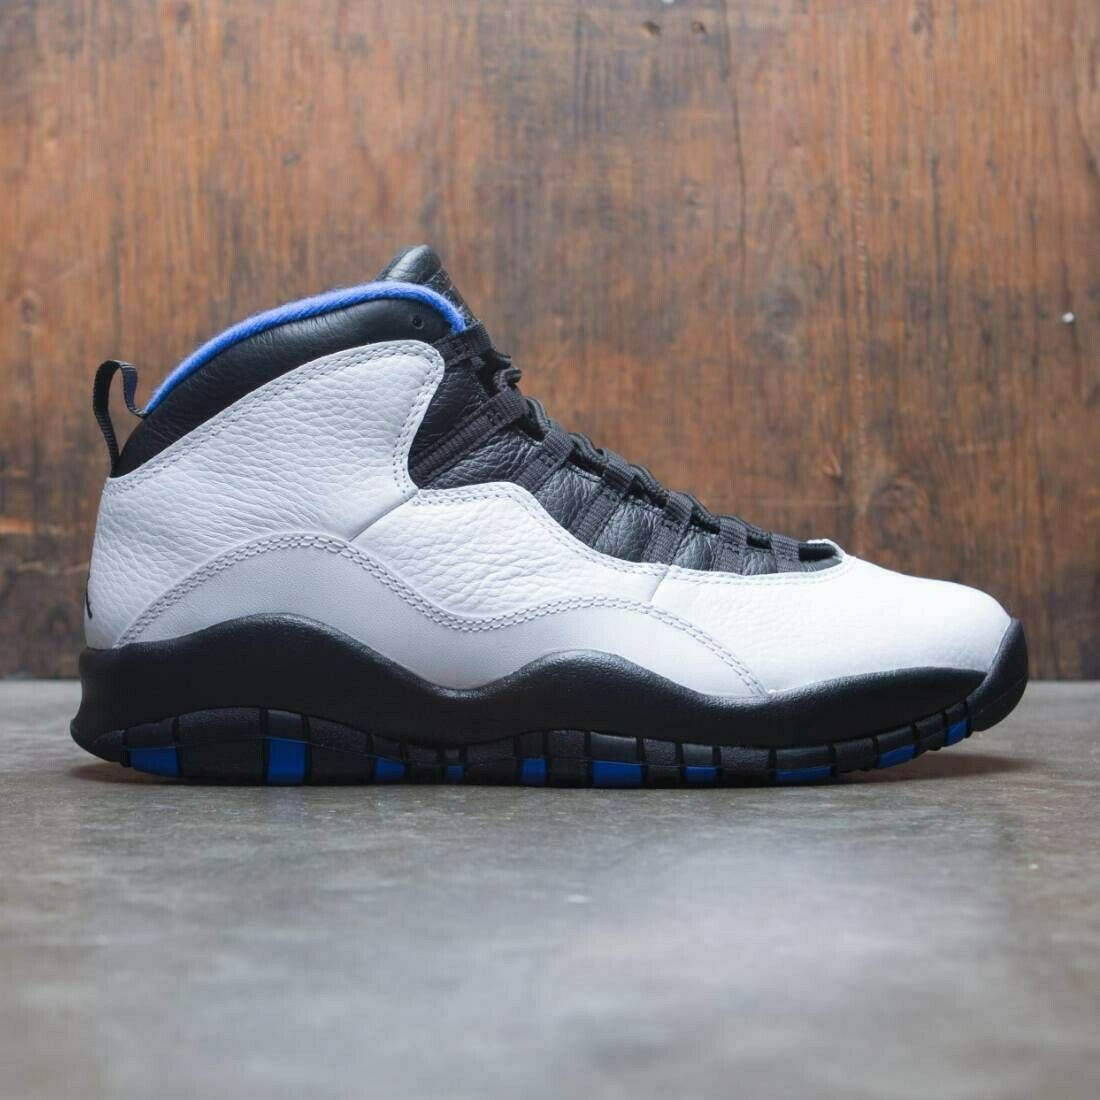 Aquaneo Wc Nike Air Jordan 10 X Retro Orlando Royal Bluee Size 16 310805 108